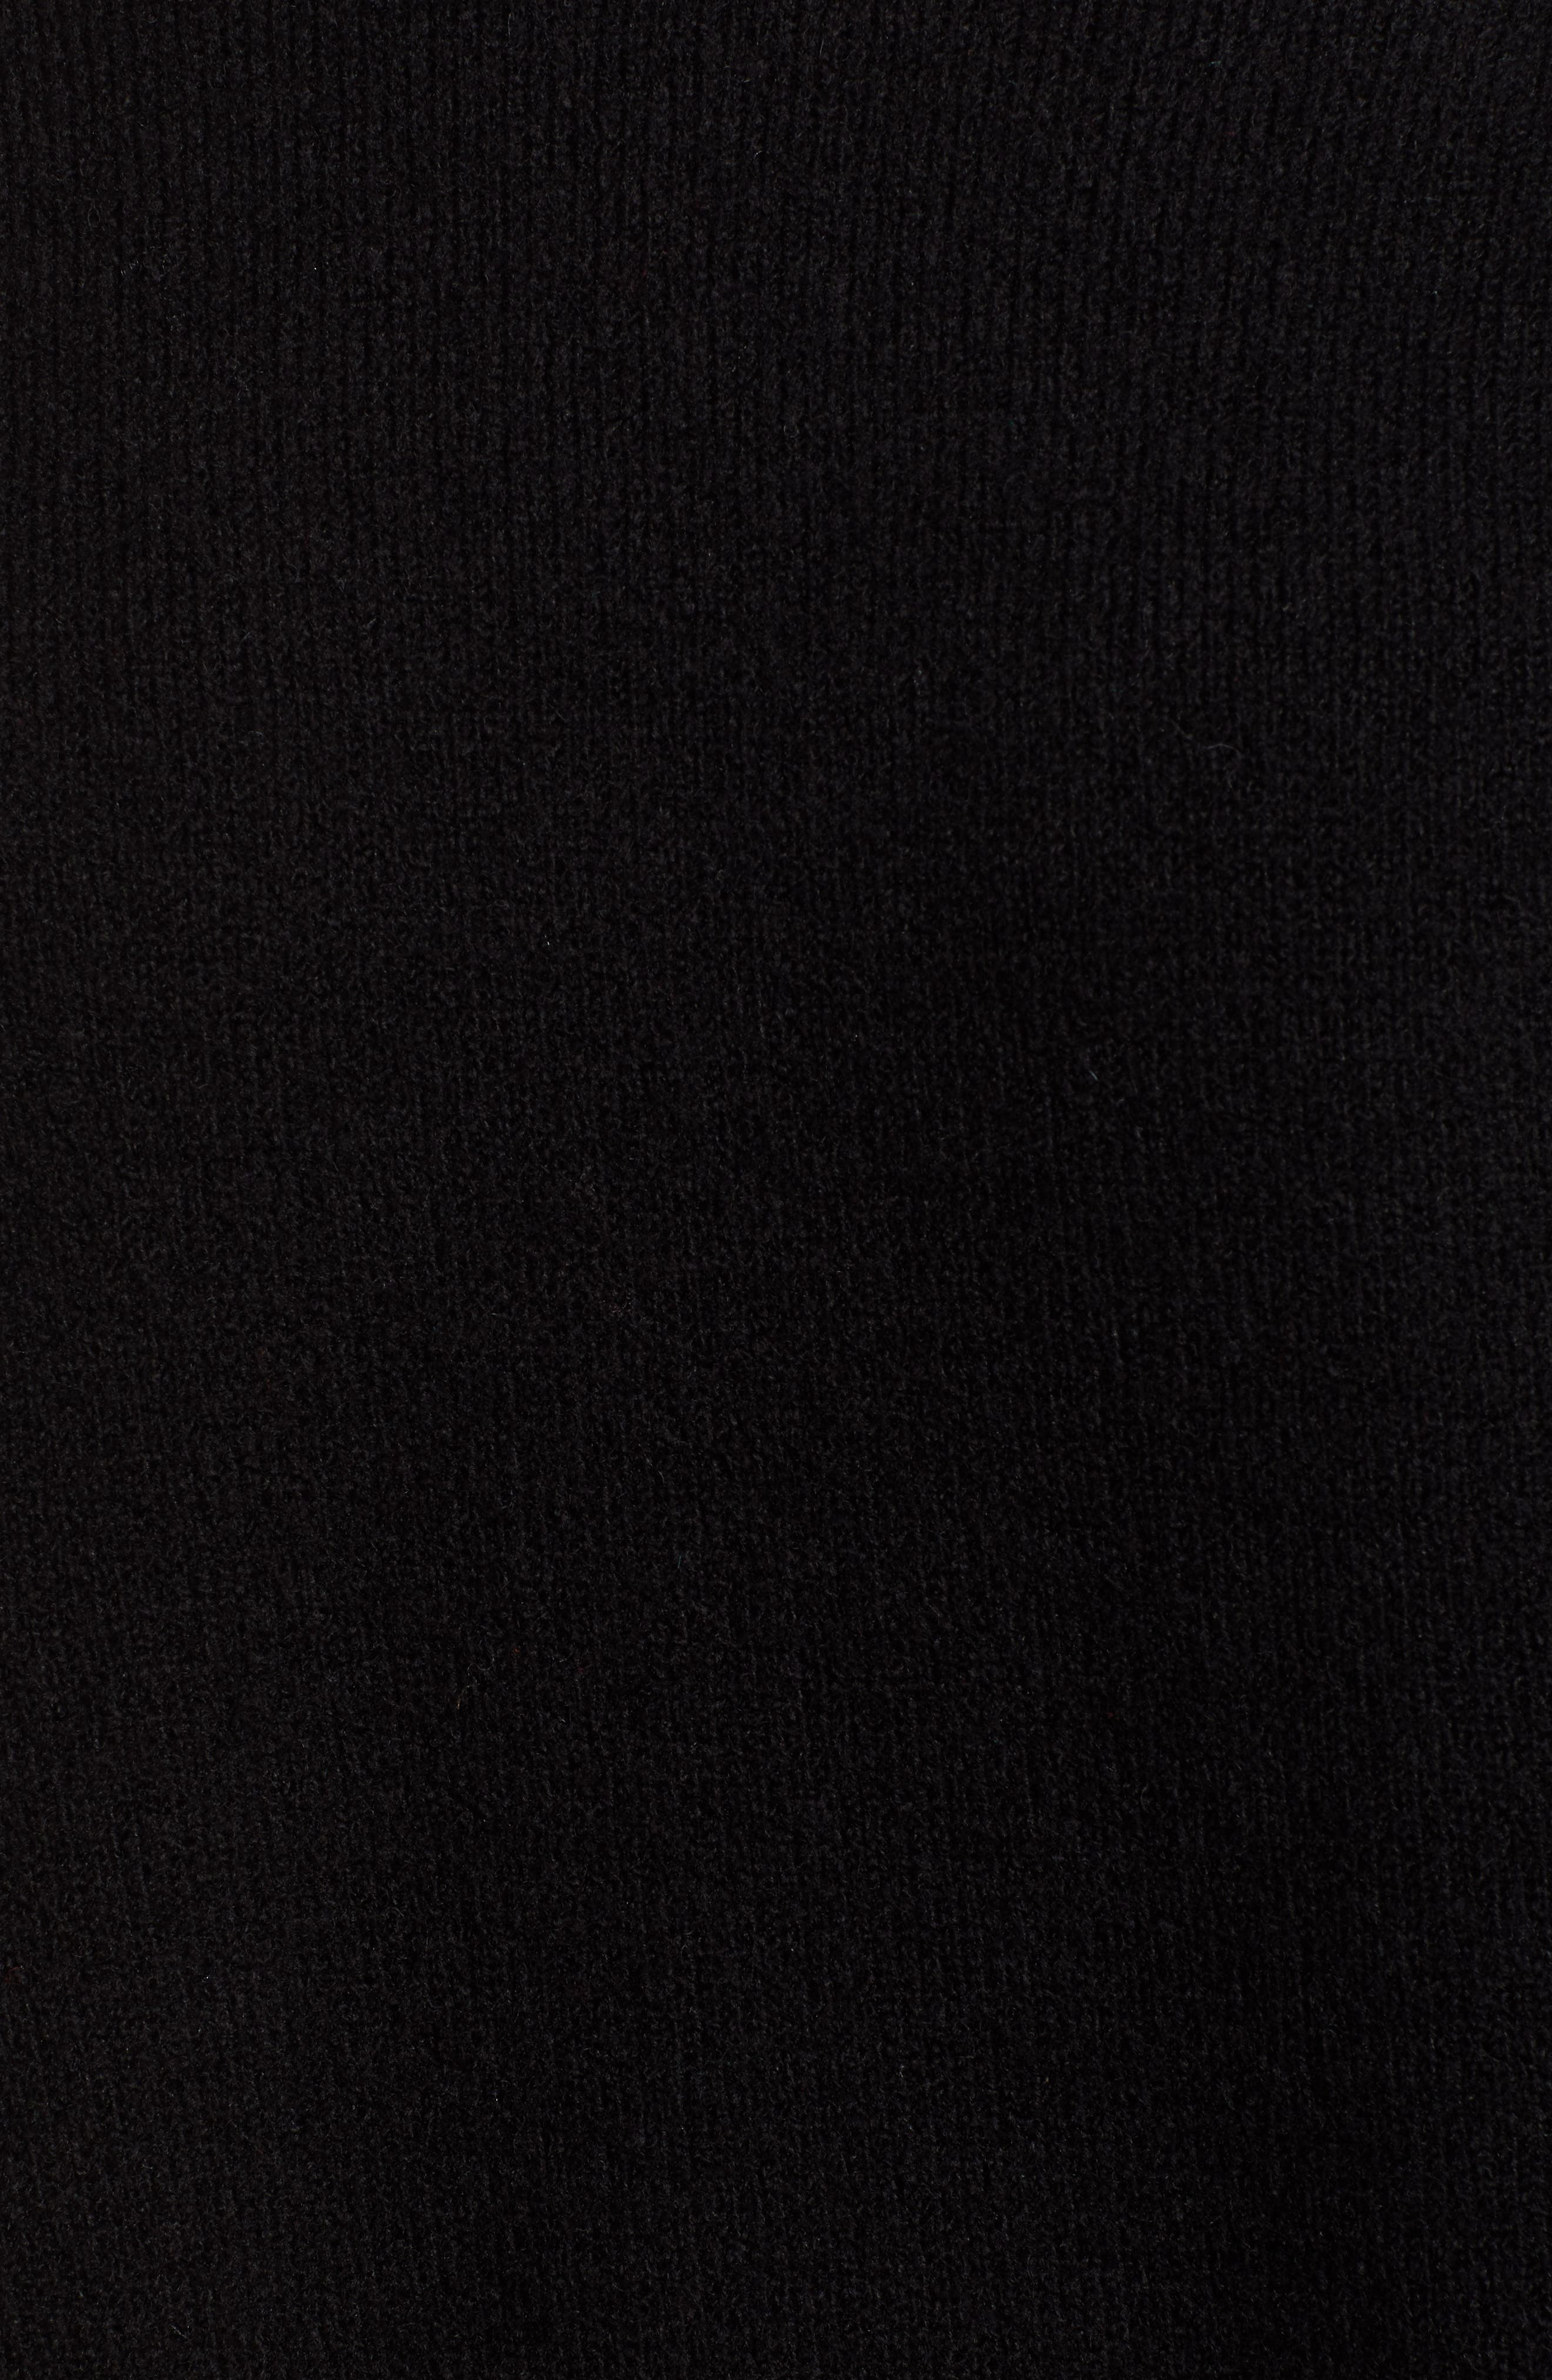 High Low Oversize Wool Blend Sweater,                             Alternate thumbnail 6, color,                             BLACK